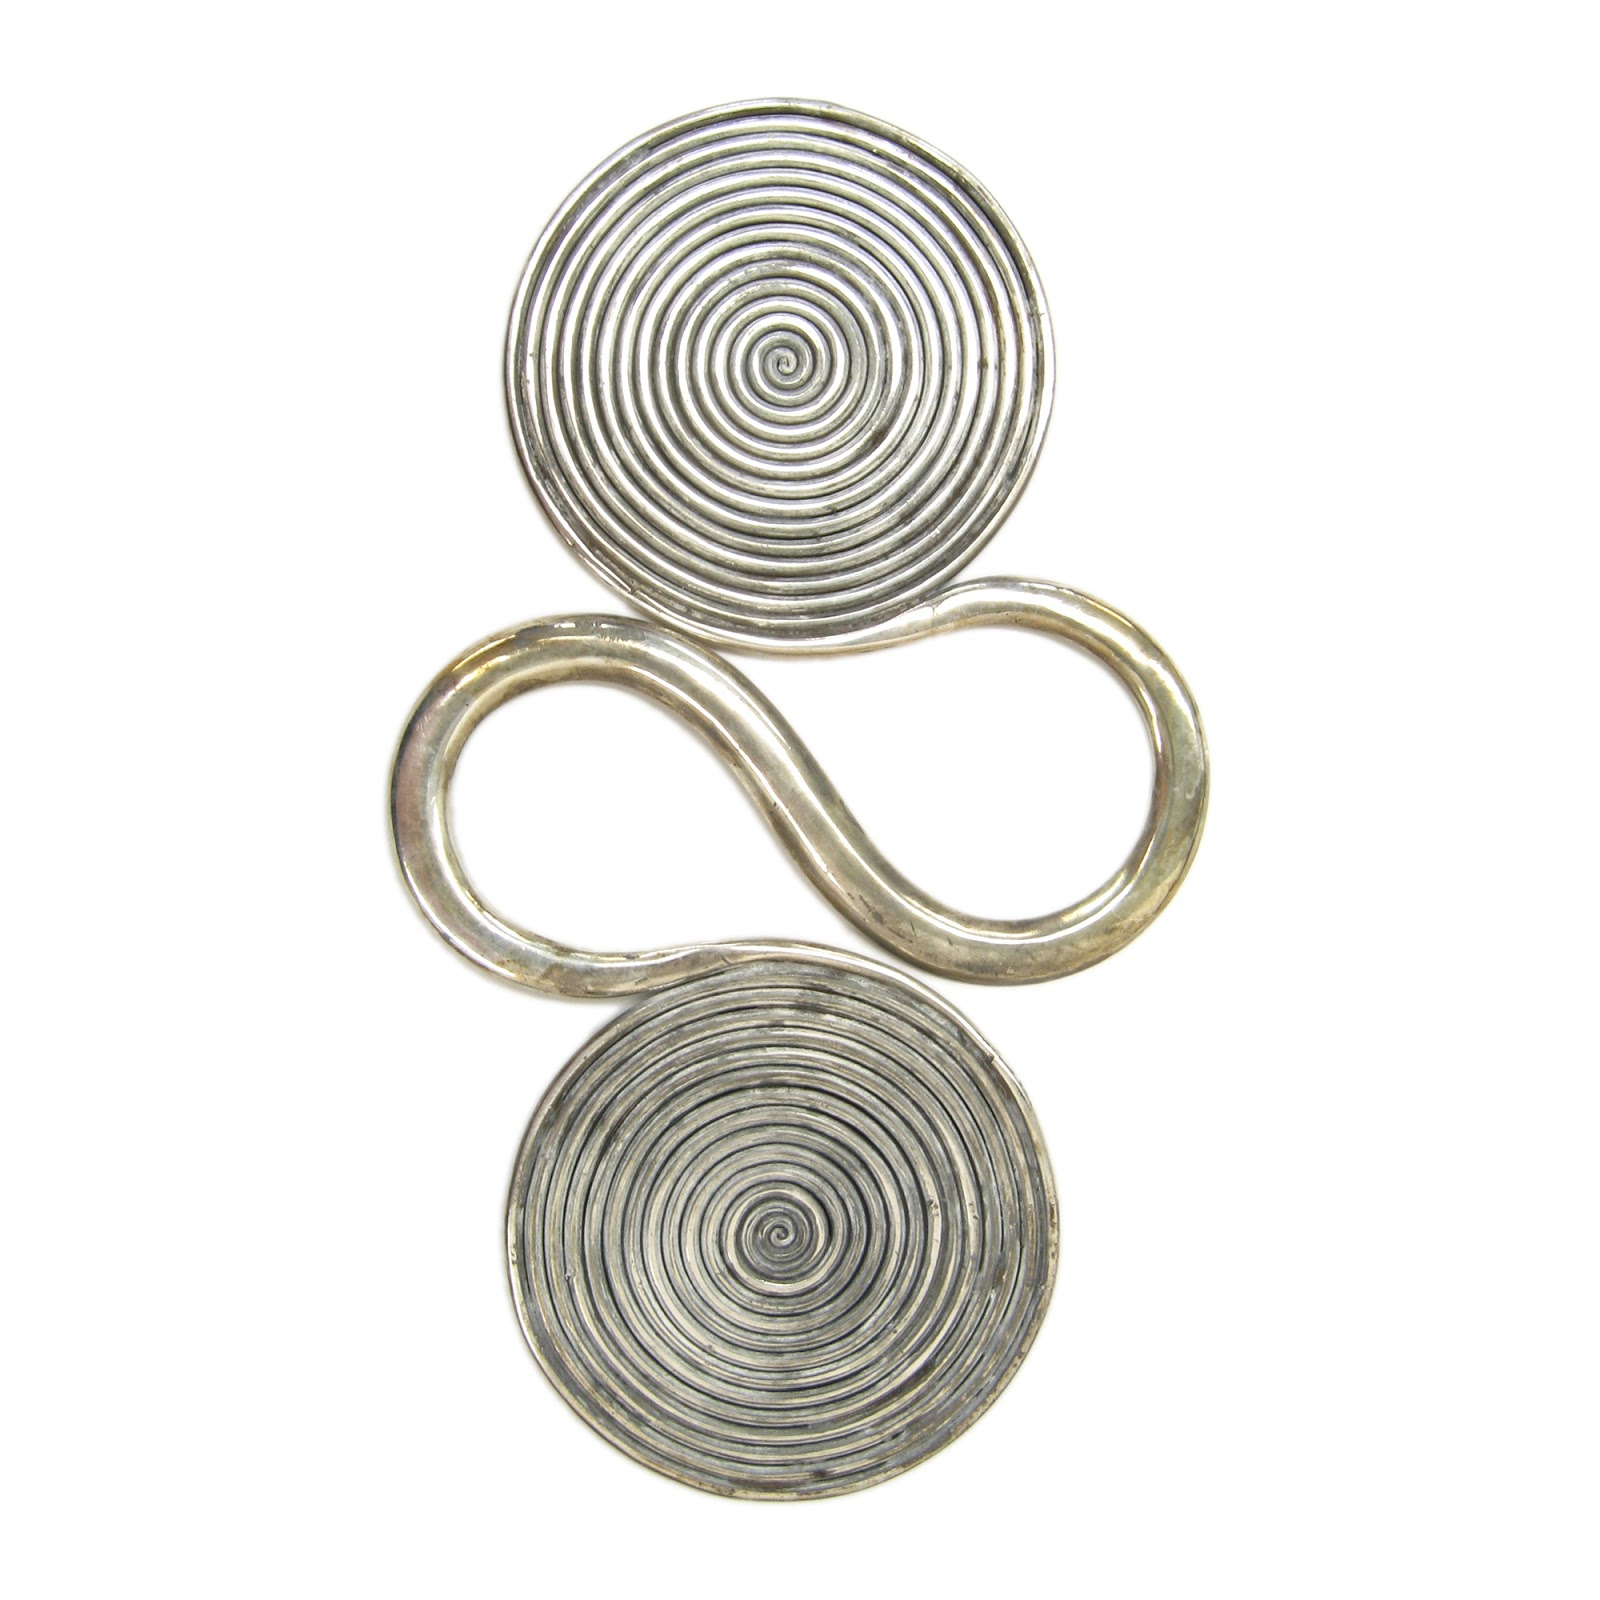 Spun Silver: Apron Counterweights of the Dong and Miao